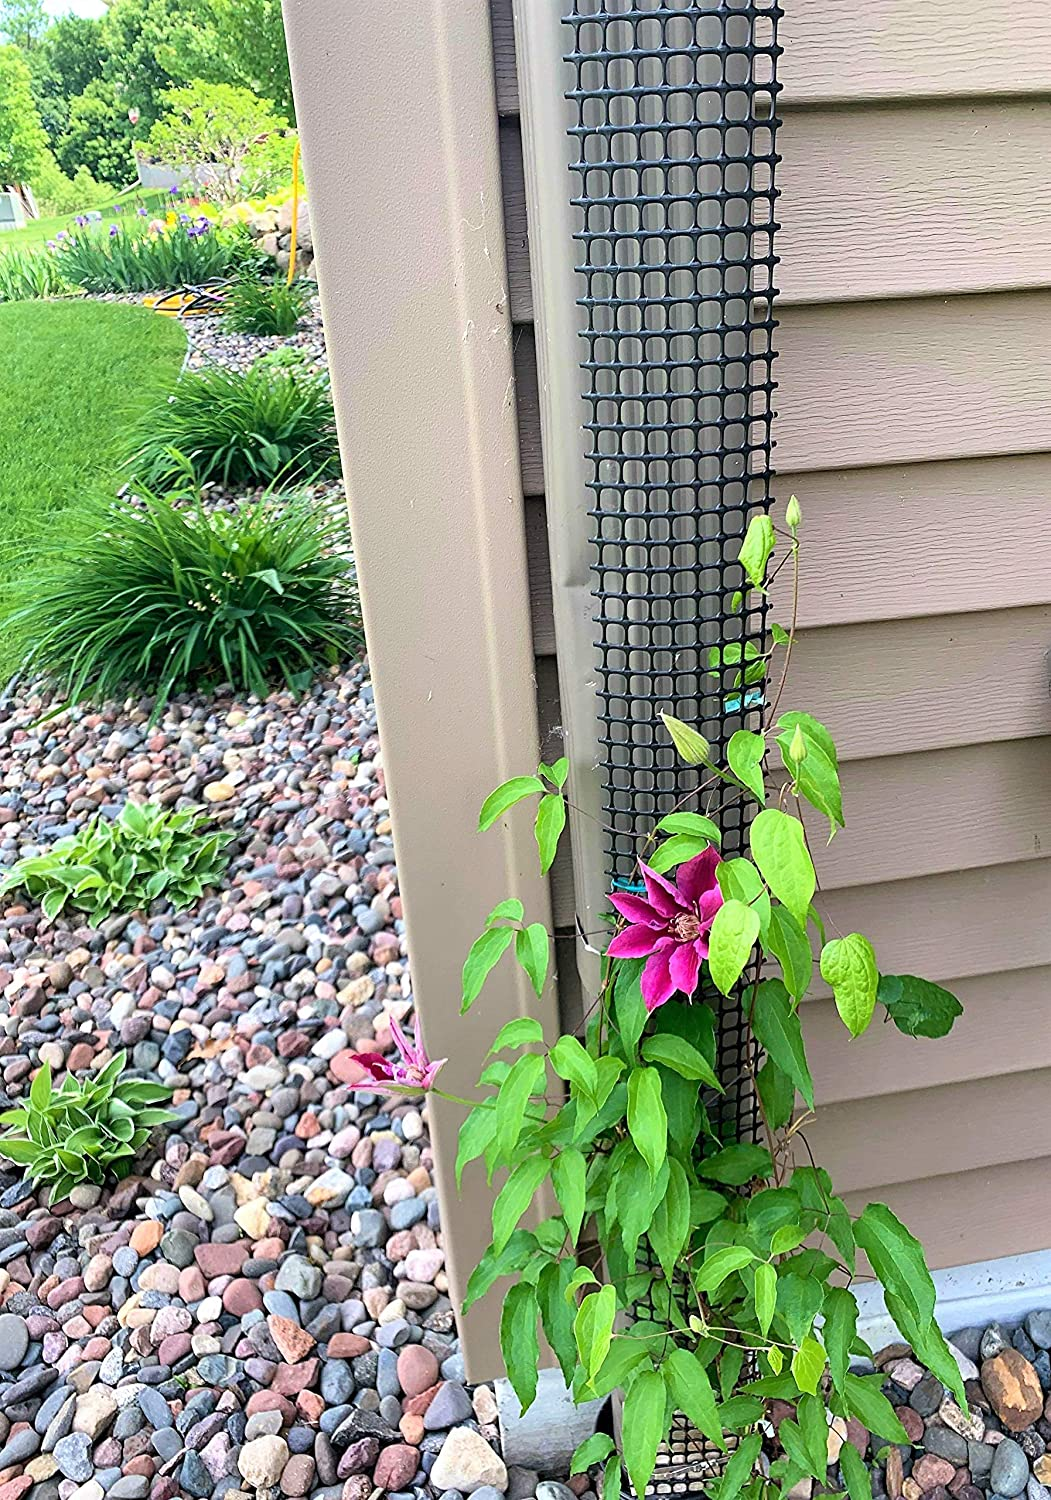 A Sleek, Narrow and Unobtrusive 9 Foot Tall Downspout Trellis to Make Your Gutter/Downspout Disappear (1 Trellis)